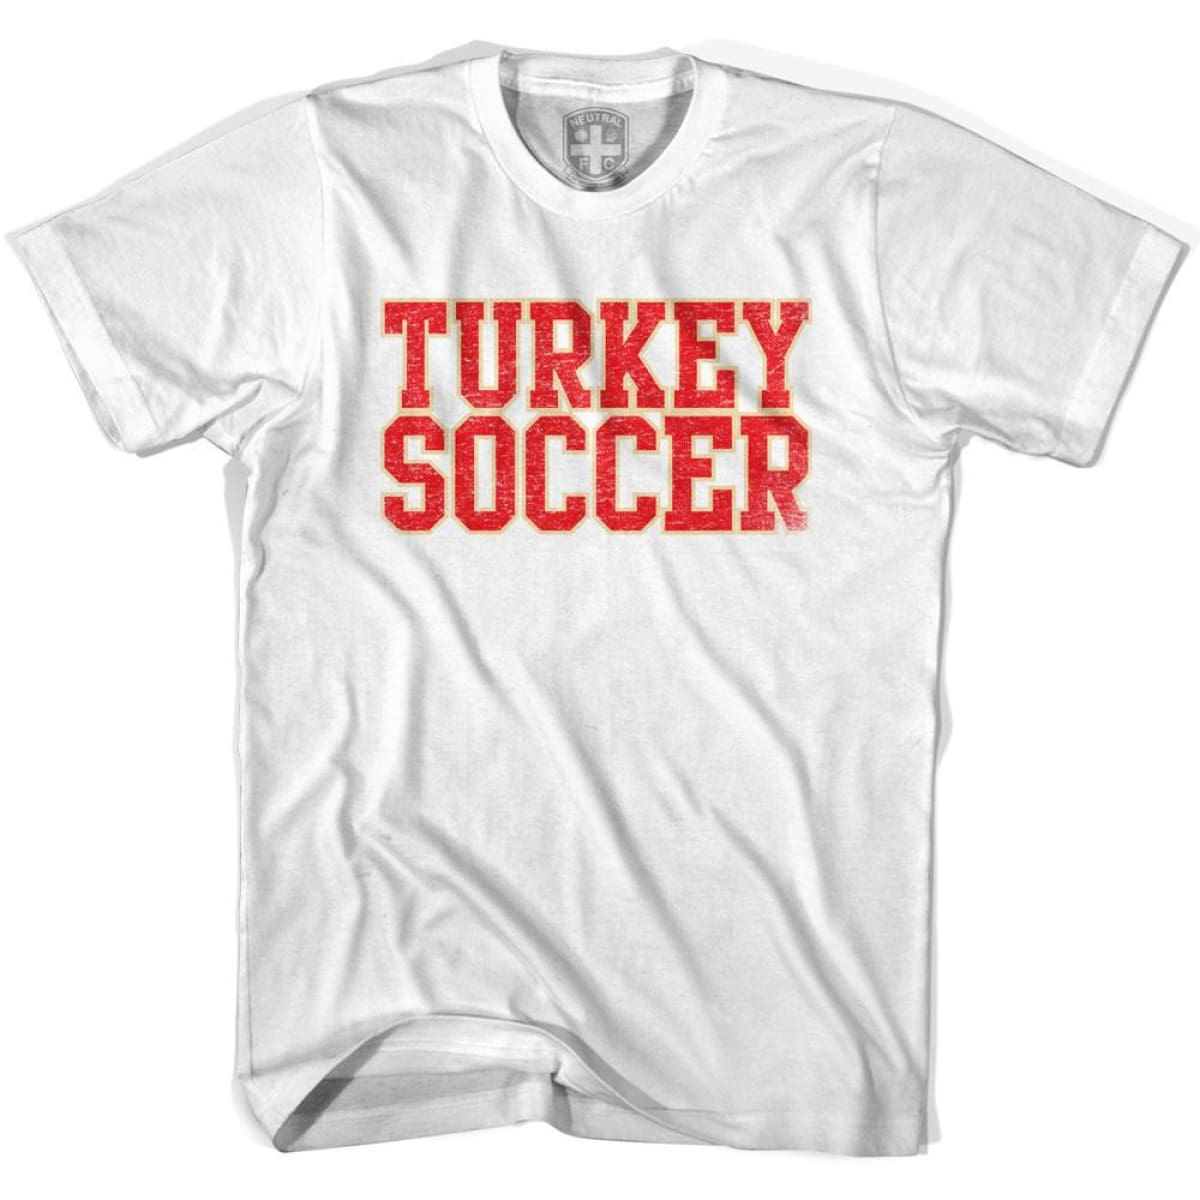 Turkey Soccer Nations World Cup T-shirt - White / Youth X-Small - Ultras Soccer T-shirts